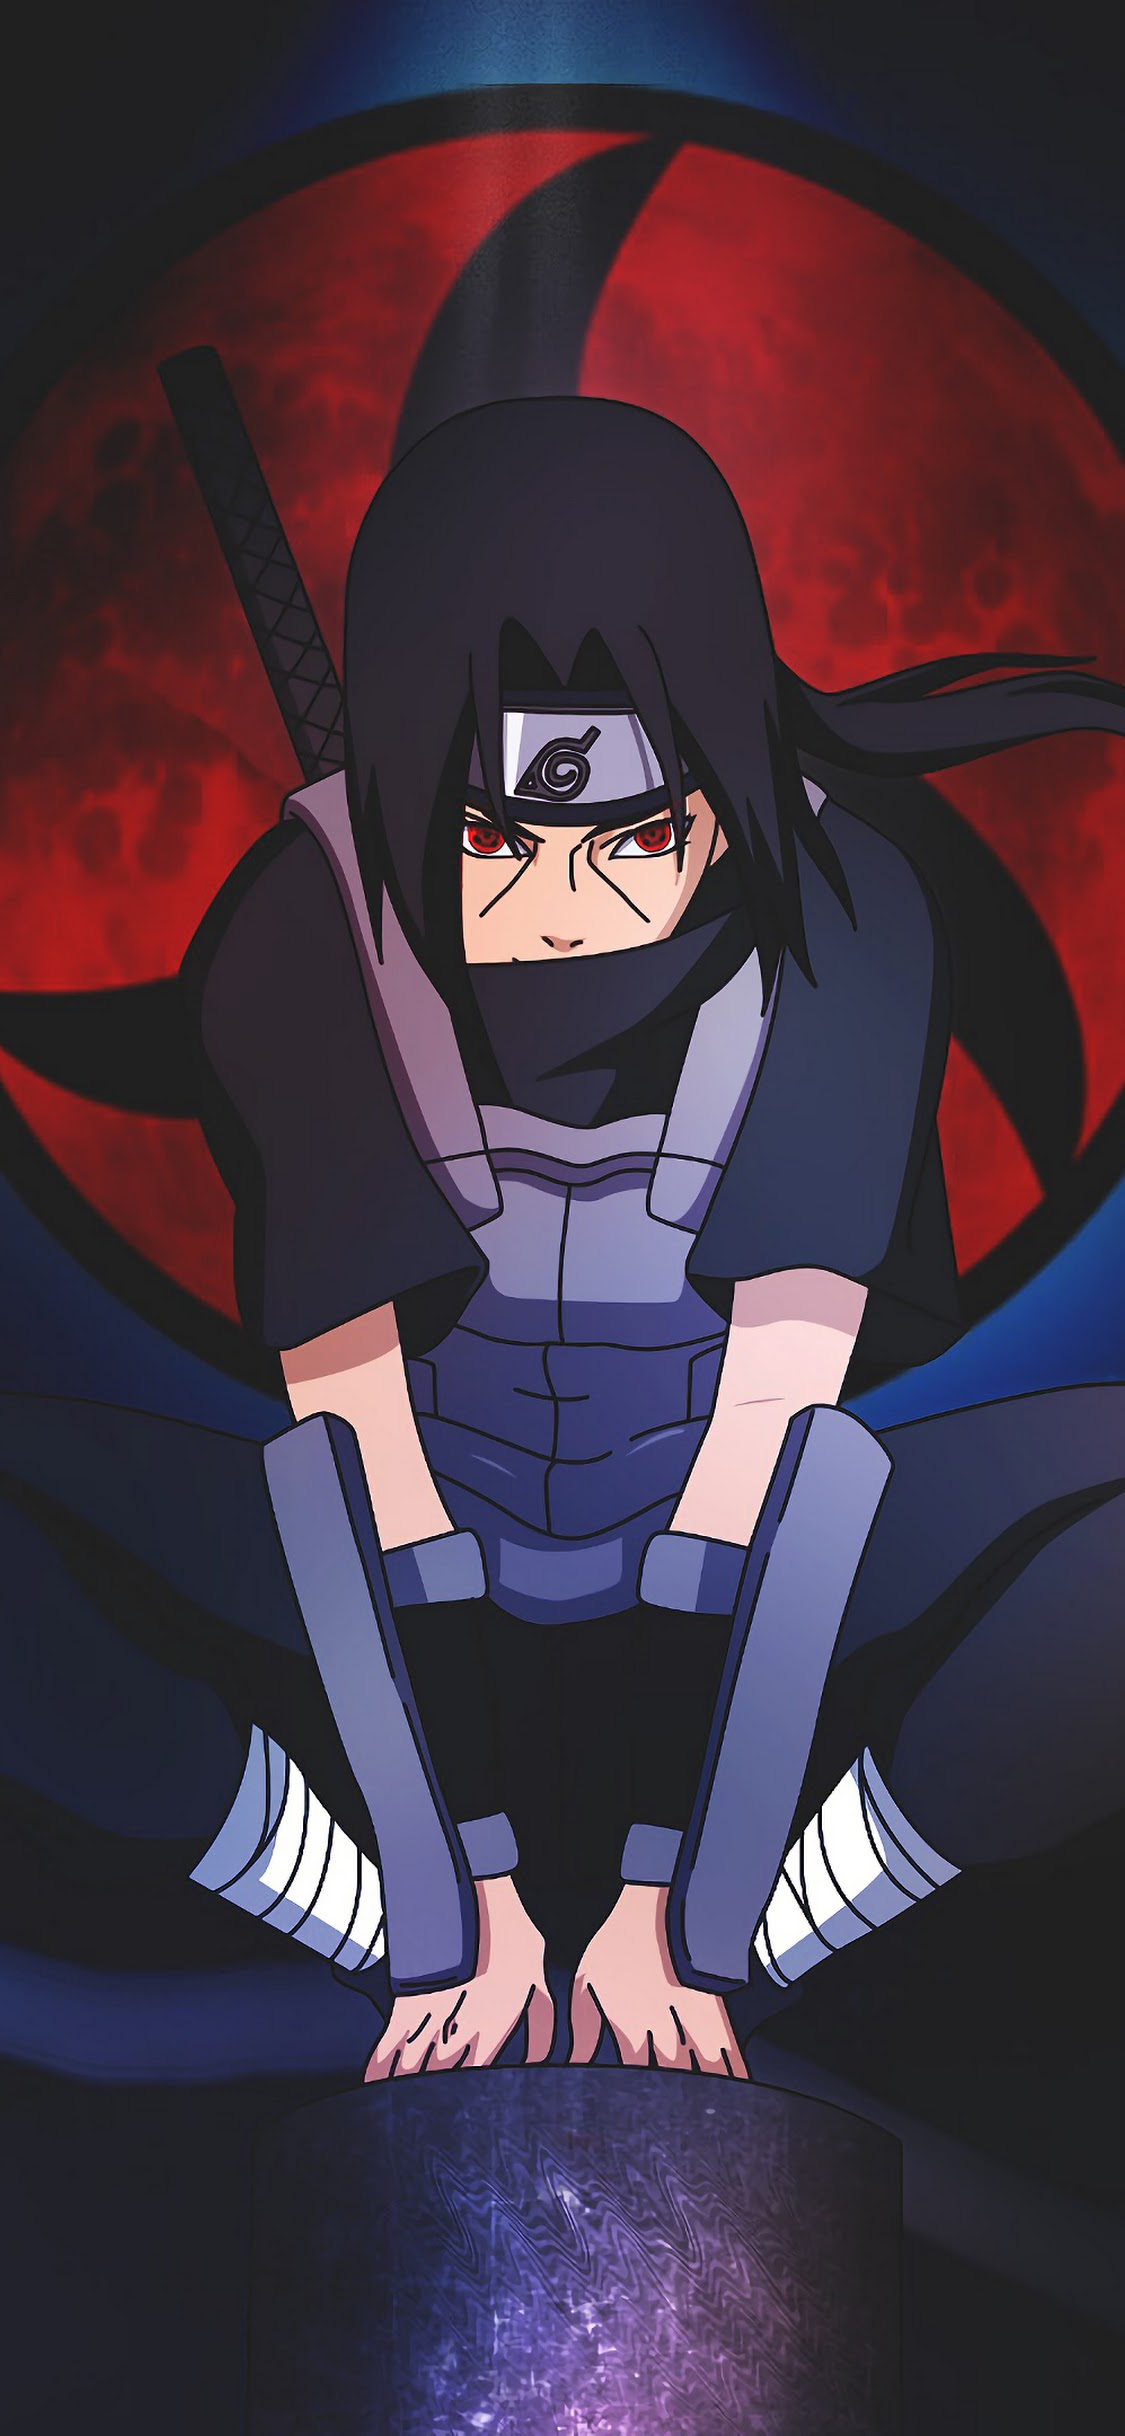 Itachi Sharingan Anbu 4K Wallpaper 6 1125x2436